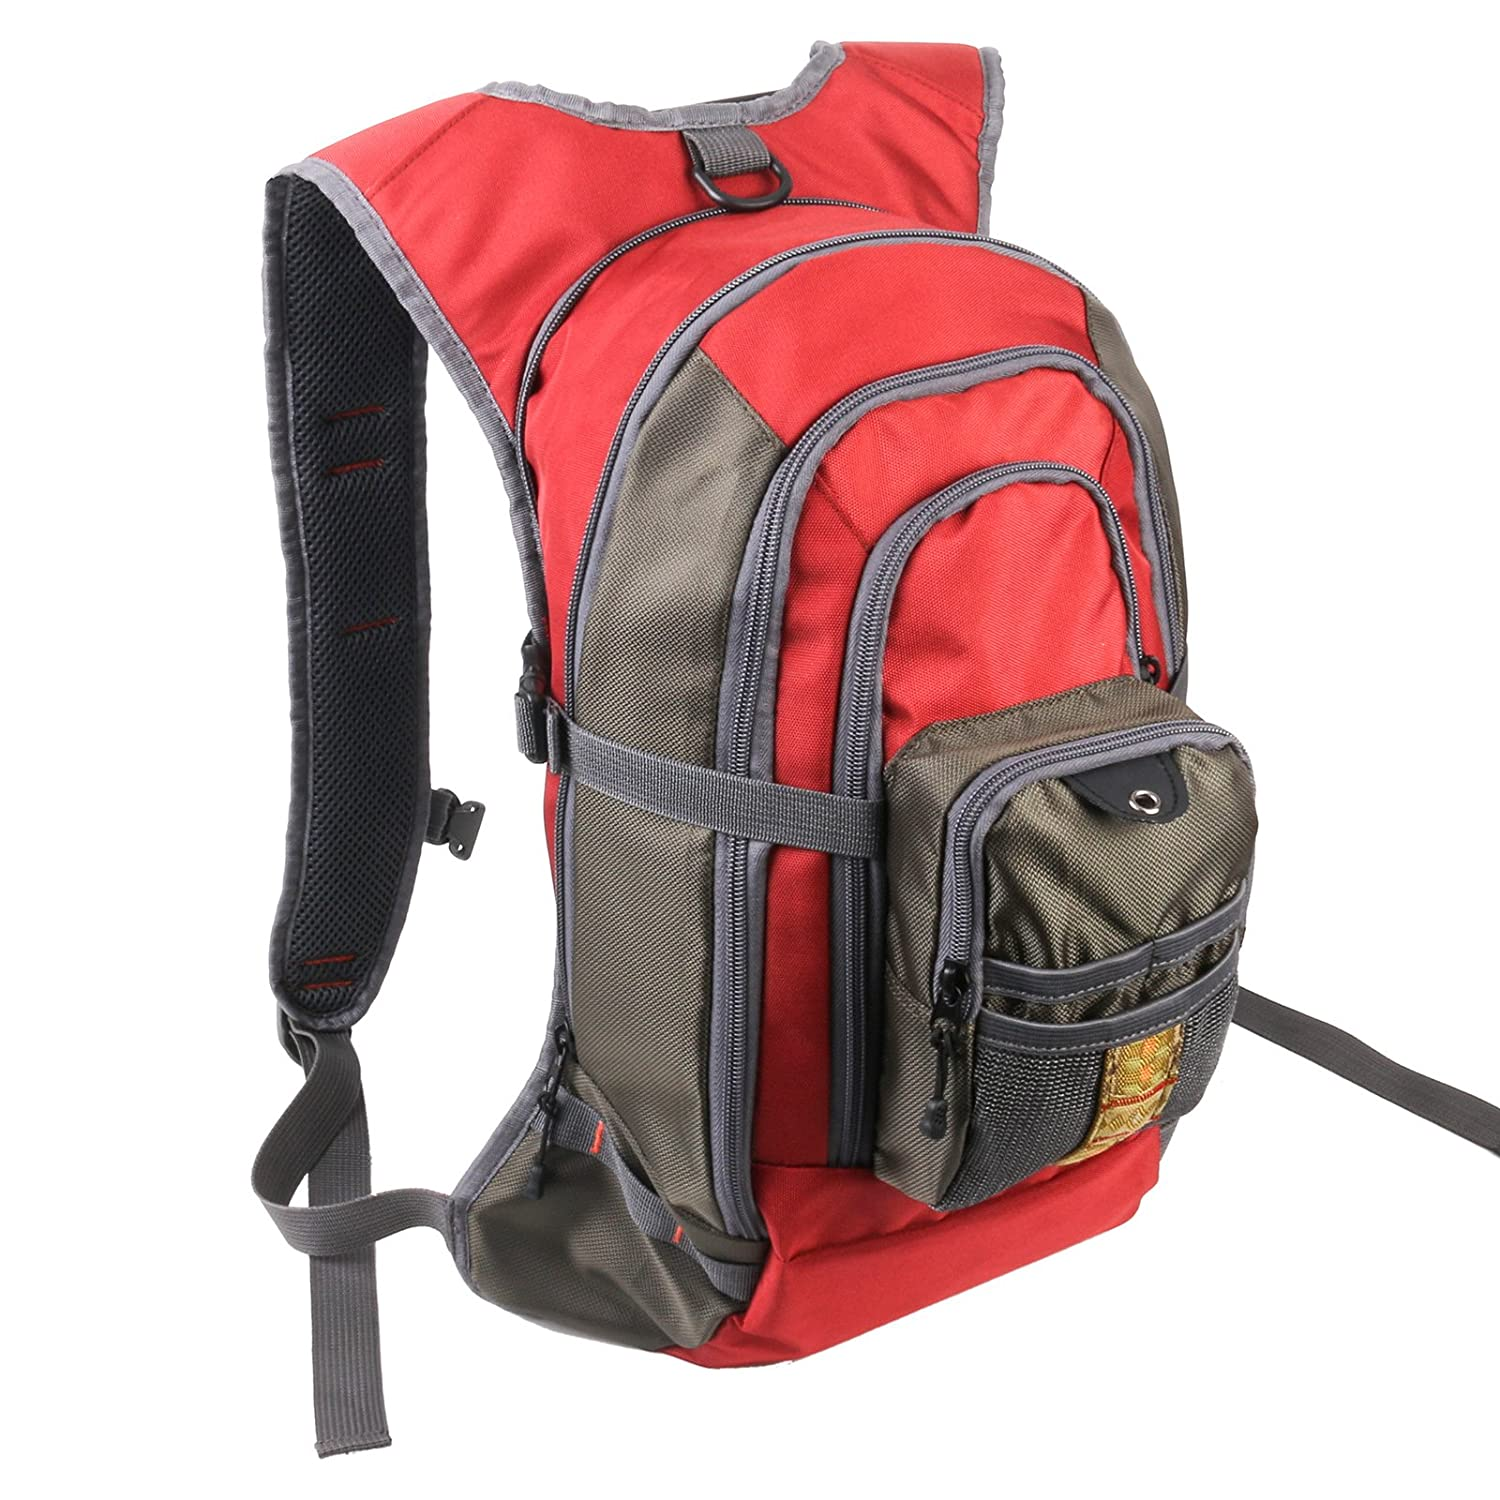 Fly fishing backpack with tackle chest pack for Fishing backpack amazon